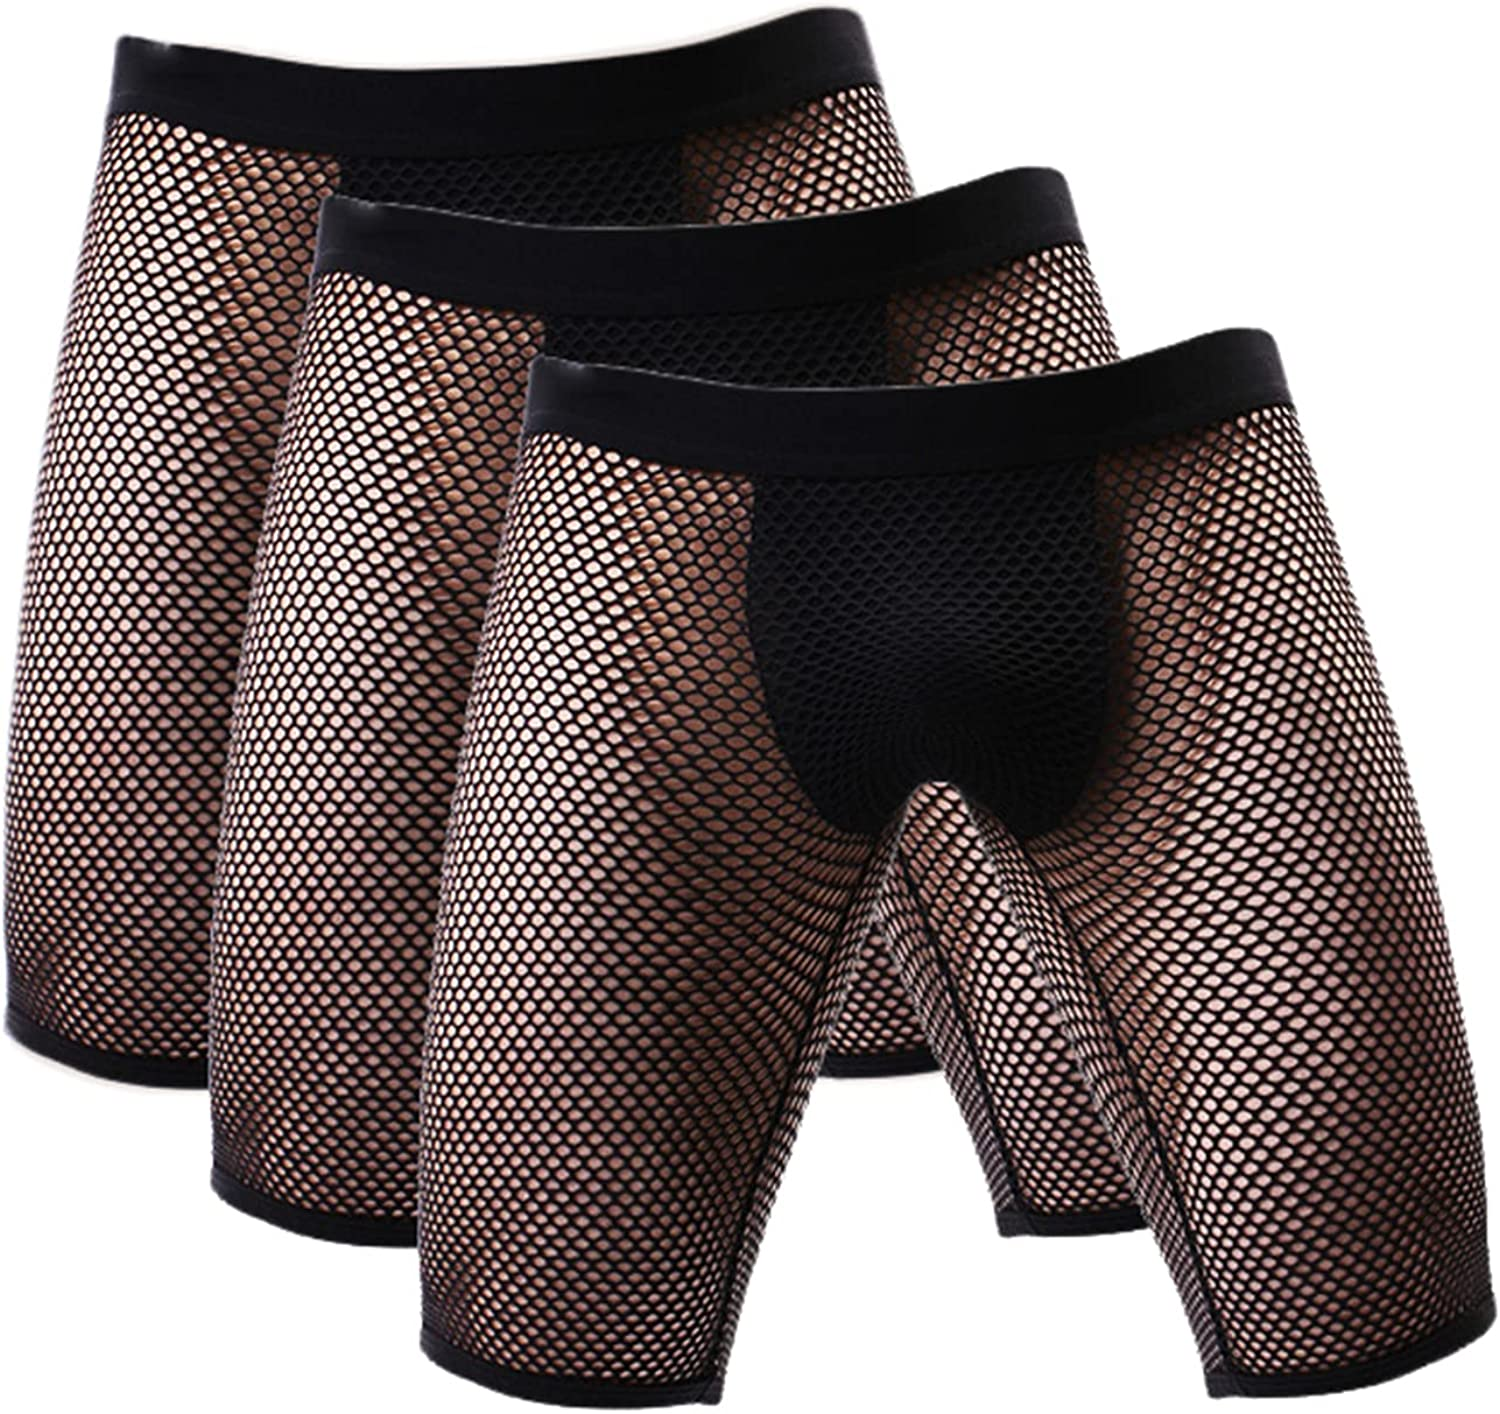 Andongnywell Mens Underwear Briefs 3 Pack Mesh Athletic Sports Boxer Briefs For Men No Fly Cool Supportive Underpants